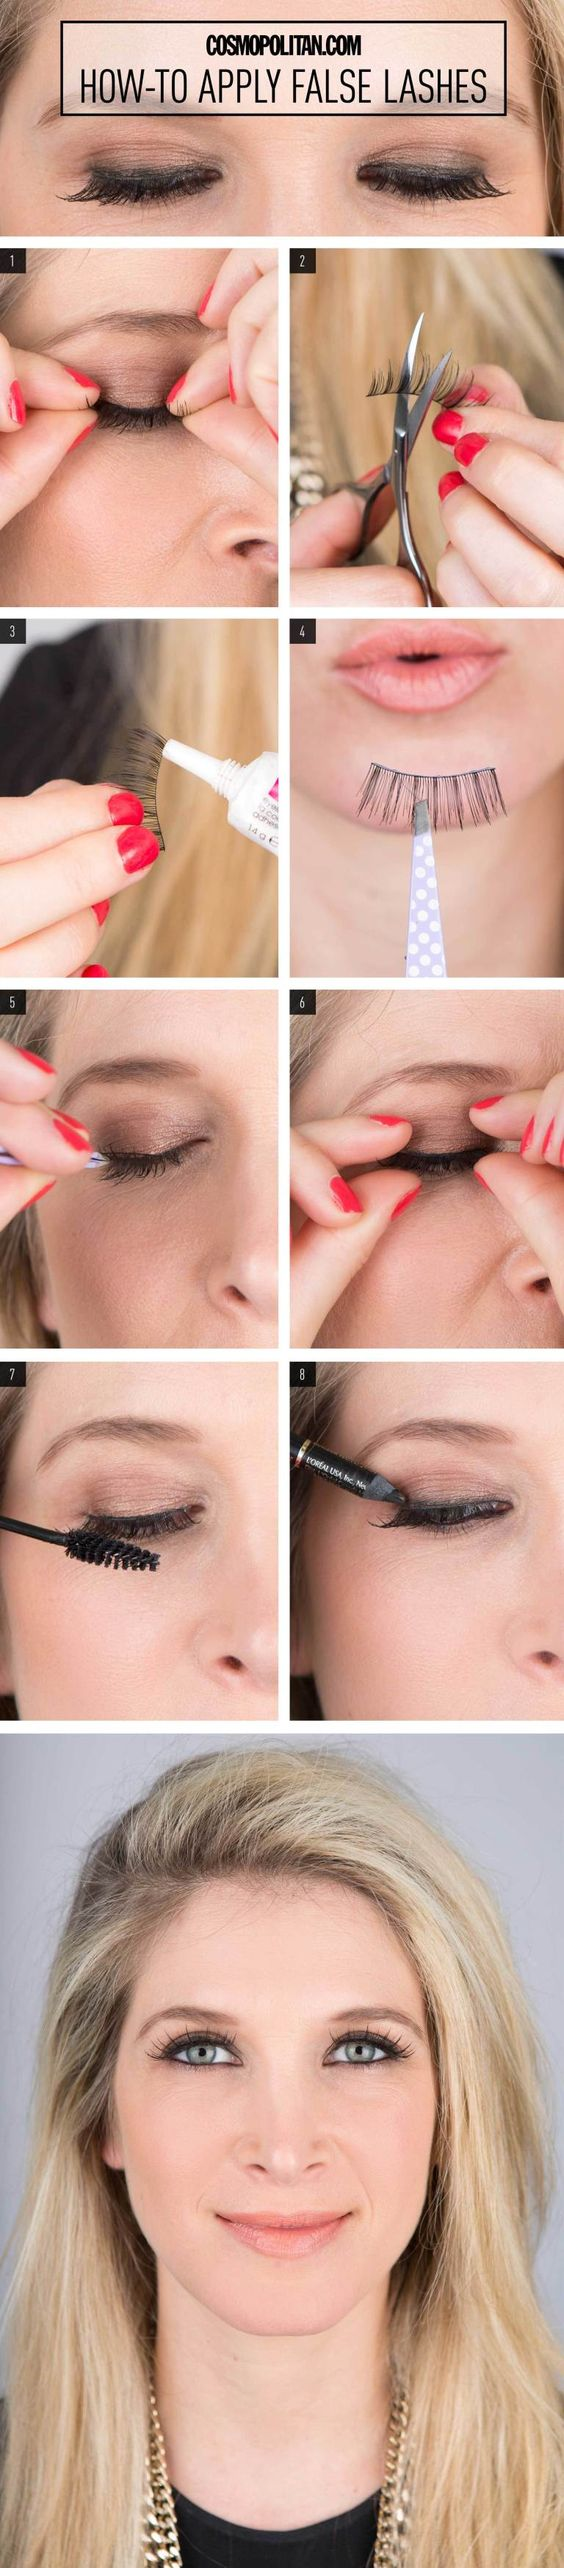 HOW TO APPLY FALSE LASHES: If you'd like to throw on a set of falsies to make your lashes flirtier, but don't because the task just seems too daunting, you're in luck. Makeup artist Lauren Cosenza breaks down exactly how to apply false lashes flawlessly. Grab some false lashes, scissors, glue, mascara, and tweezers, and click through to read the simple and easy false eyelash beauty tutorial.